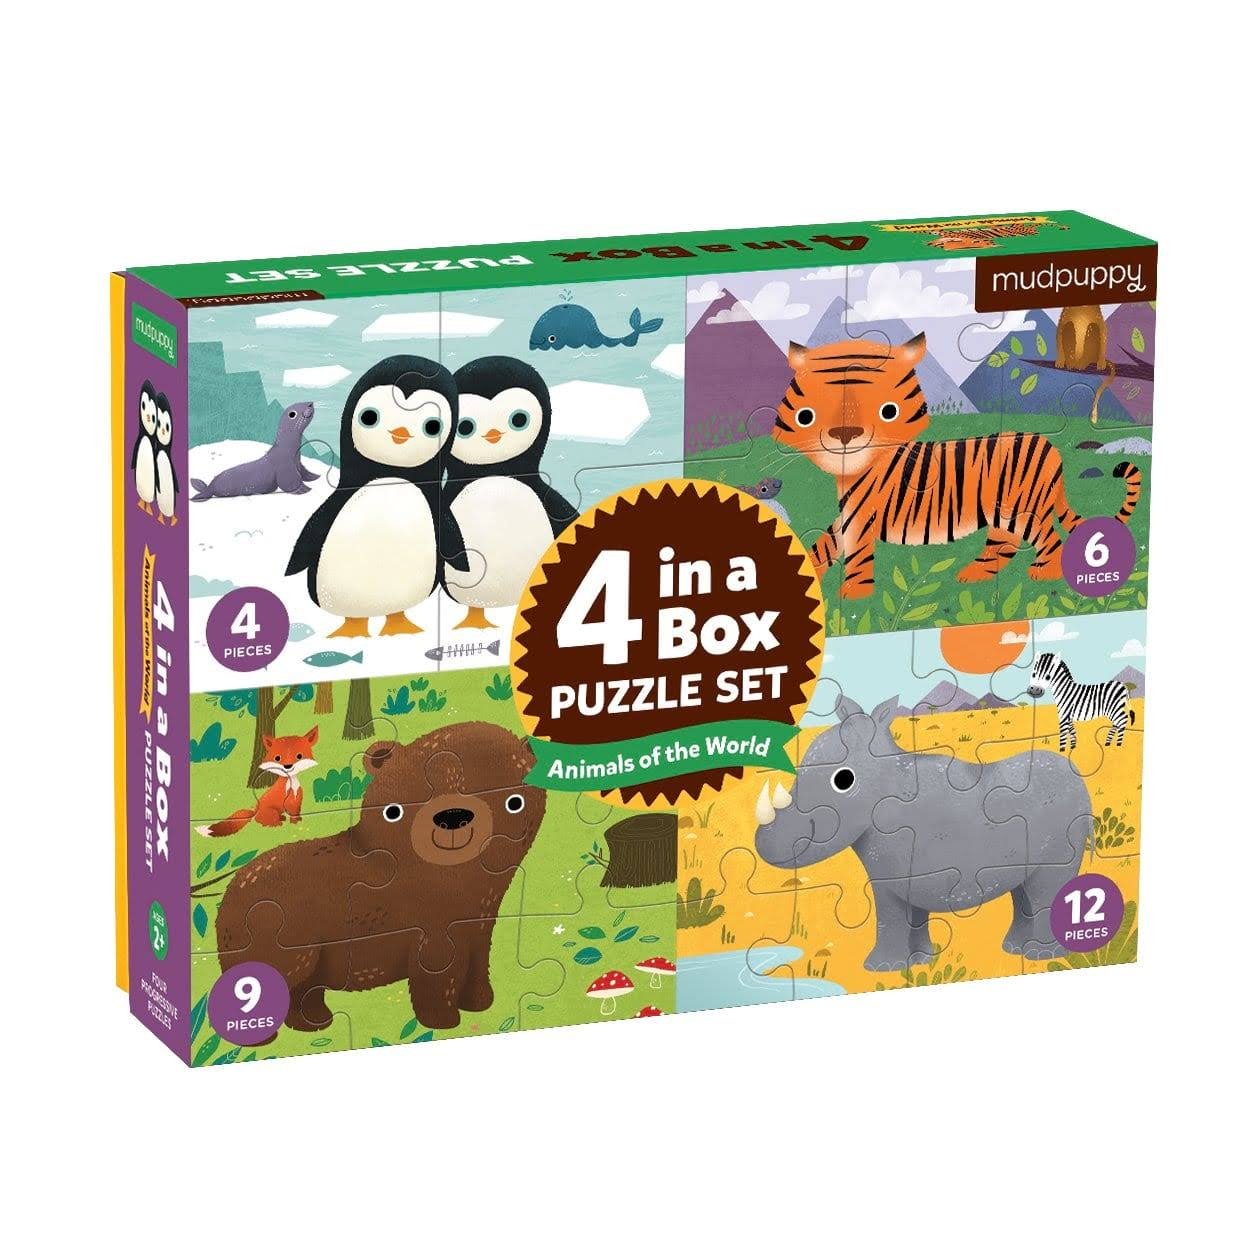 Mudpuppy Animals of the World 4-in-a-Box Puzzle Set